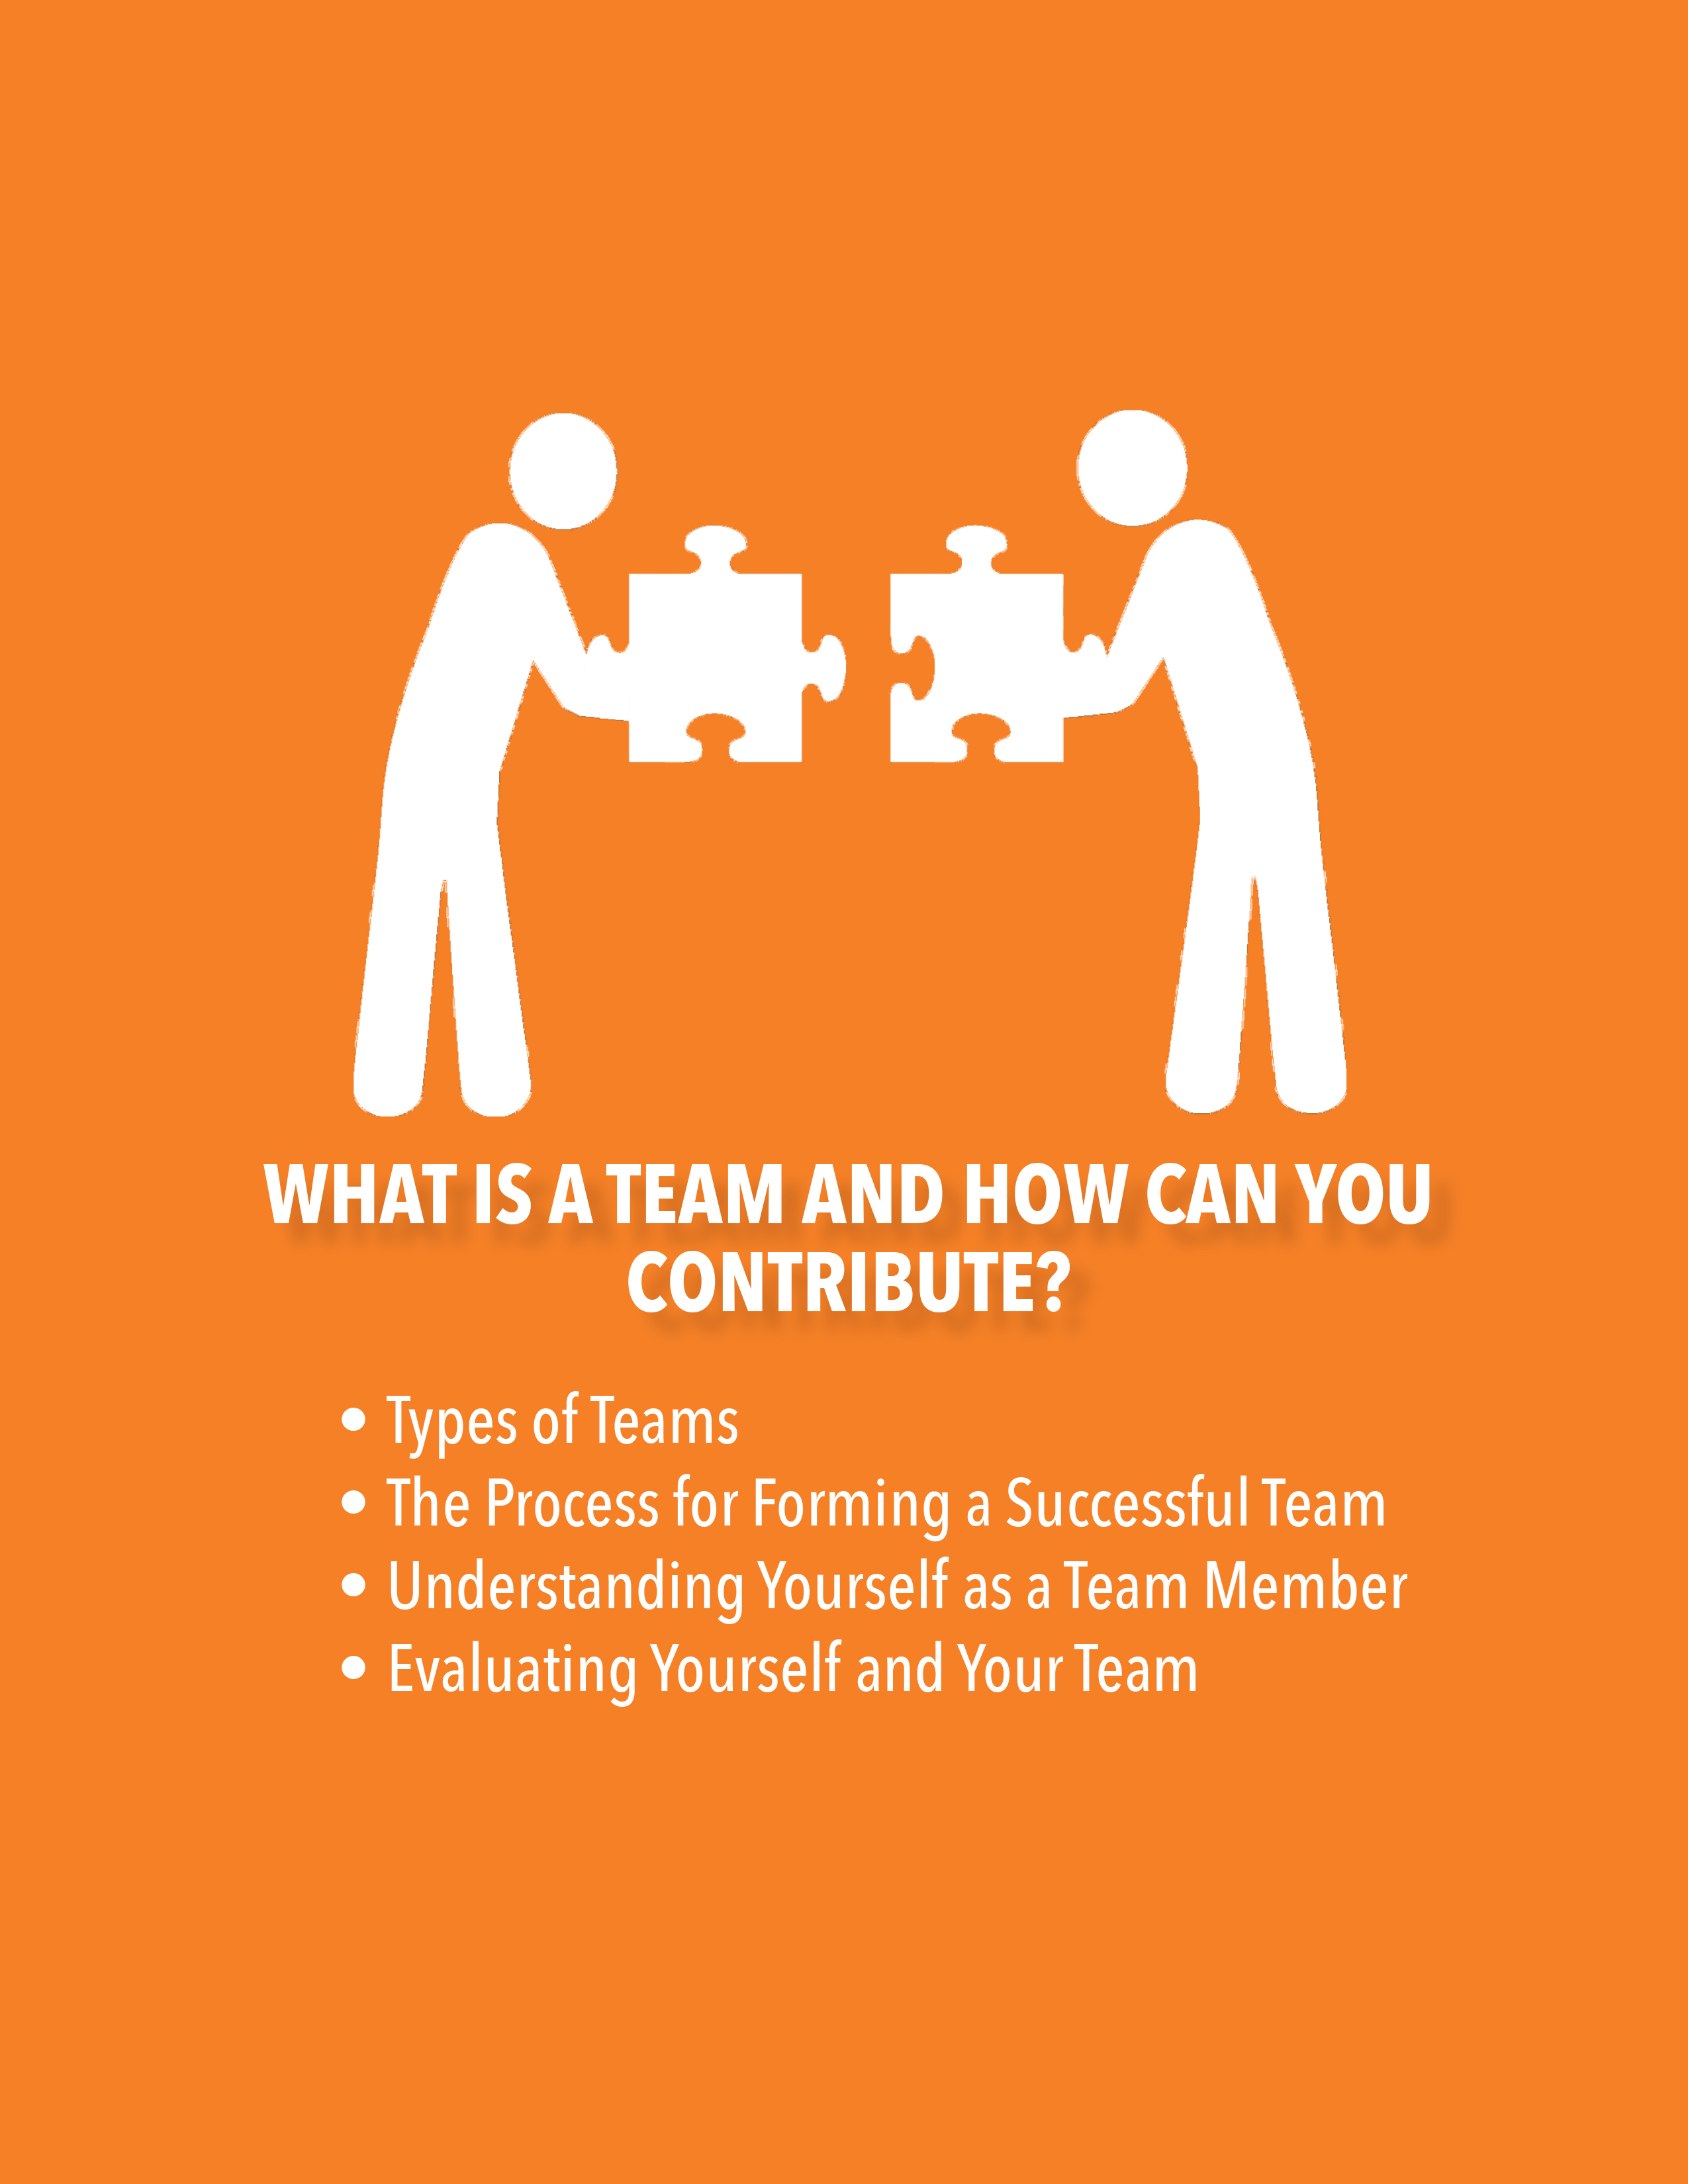 What is a Team and How Can You Contribute? Types of Team, The Process of Forming a Successful Team, Understanding Yourself as a Team Member, Evaluating Yourself and Your Team